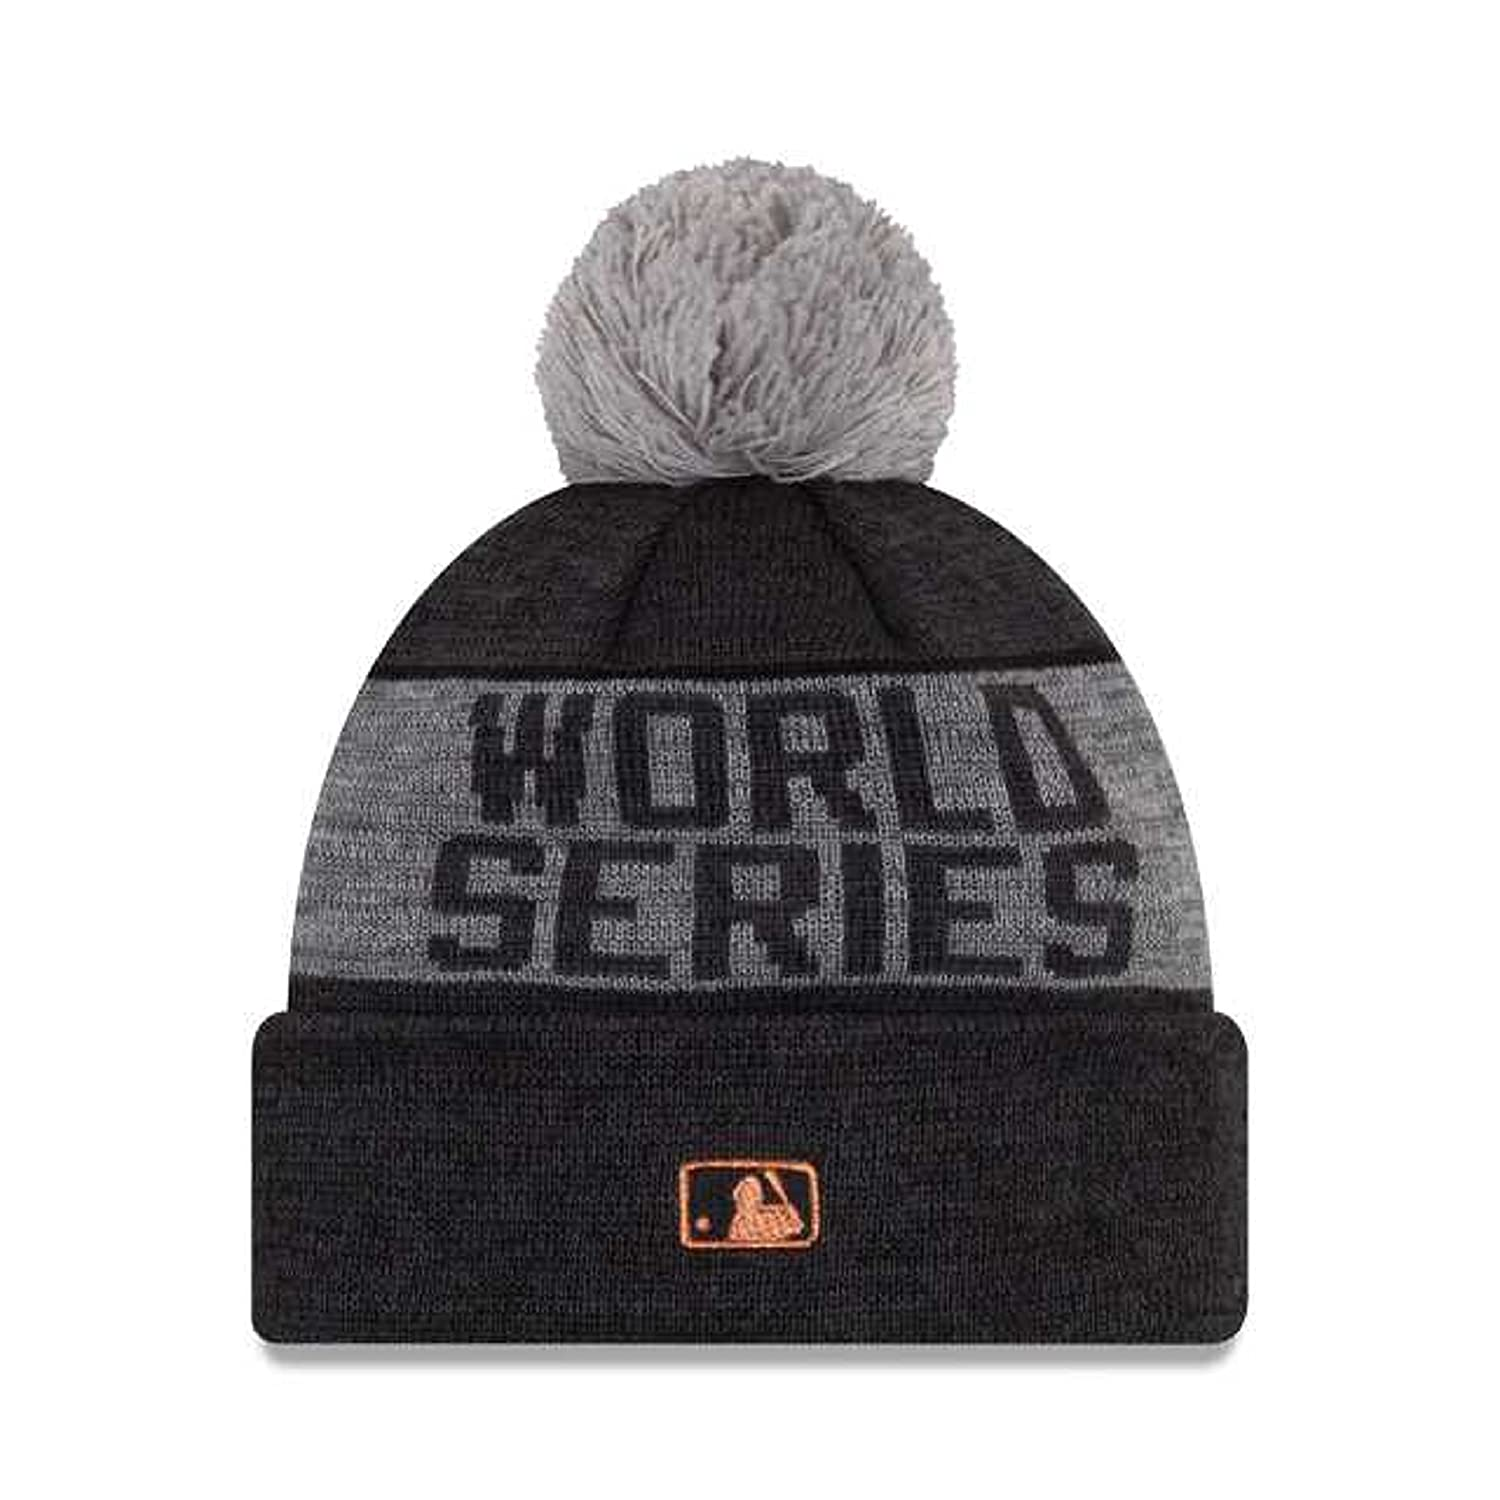 Amazon.com  2017 NEW ERA MLB WORLD SERIES CHAMPIONS HUSTON ASTROS KNIT  GREY  Clothing f52cf86db0f7